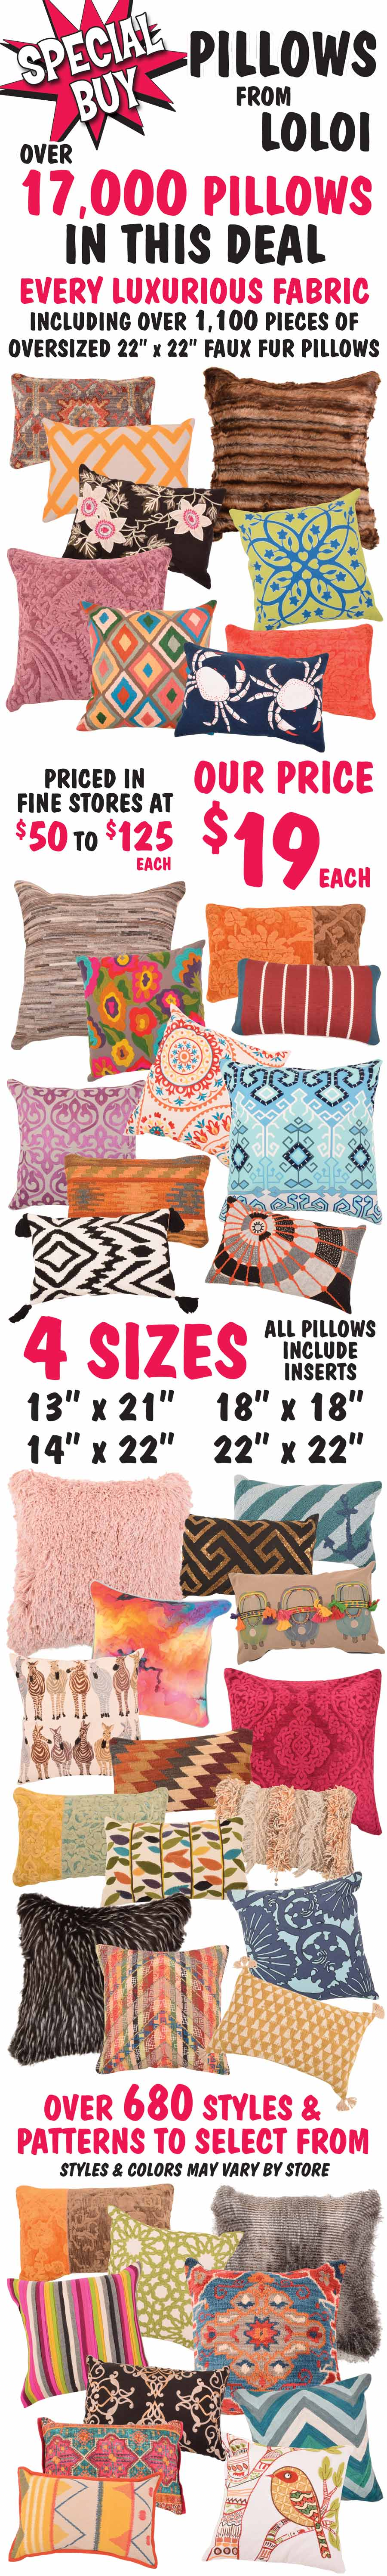 Pillows from Loloi - $19 Special Buy - While They Last!